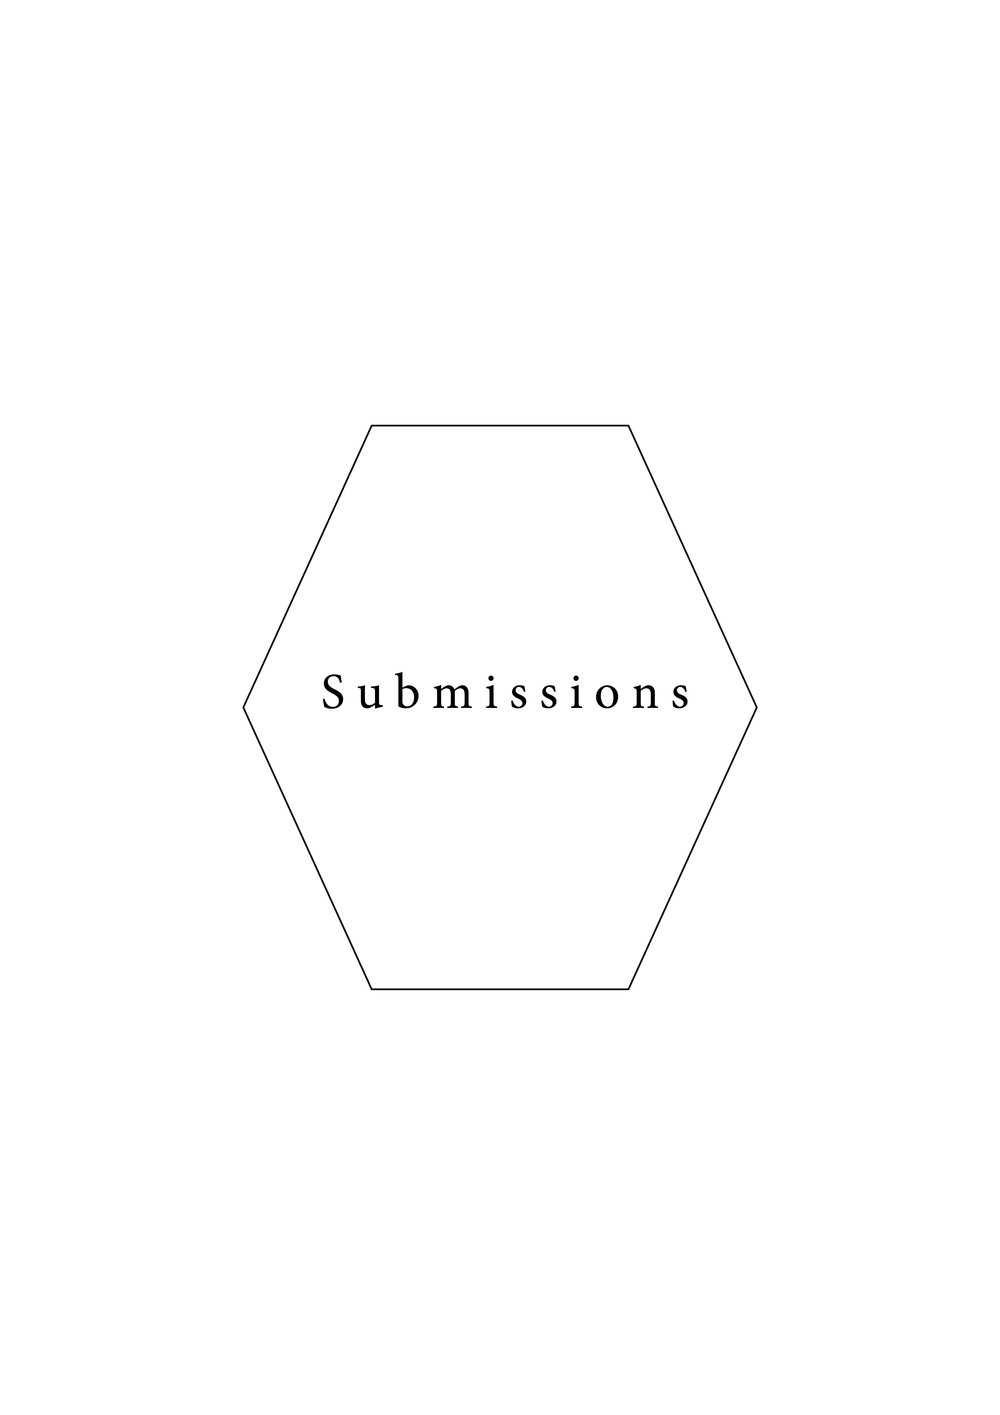 Submissions_hex.jpg